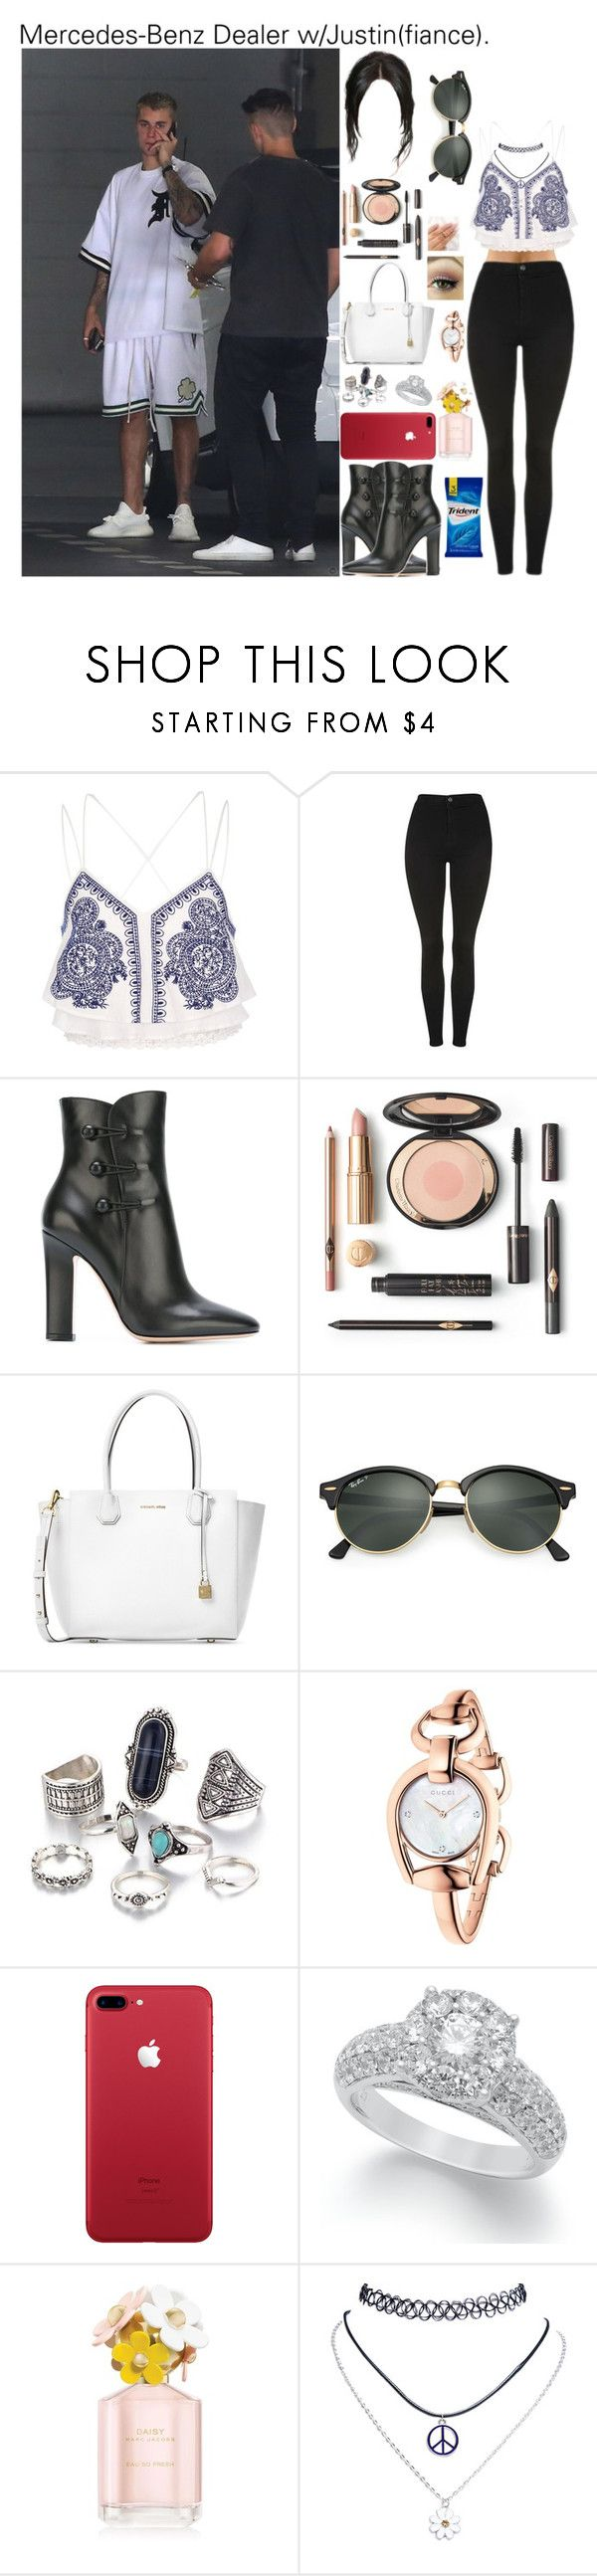 """""""Mercedes-Benz Dealer w/Justin(fiance)."""" by tatabranquinha ❤ liked on Polyvore featuring River Island, Topshop, Gianvito Rossi, Michael Kors, Ray-Ban, Gucci, Marc Jacobs, Wet Seal, outfit and set"""